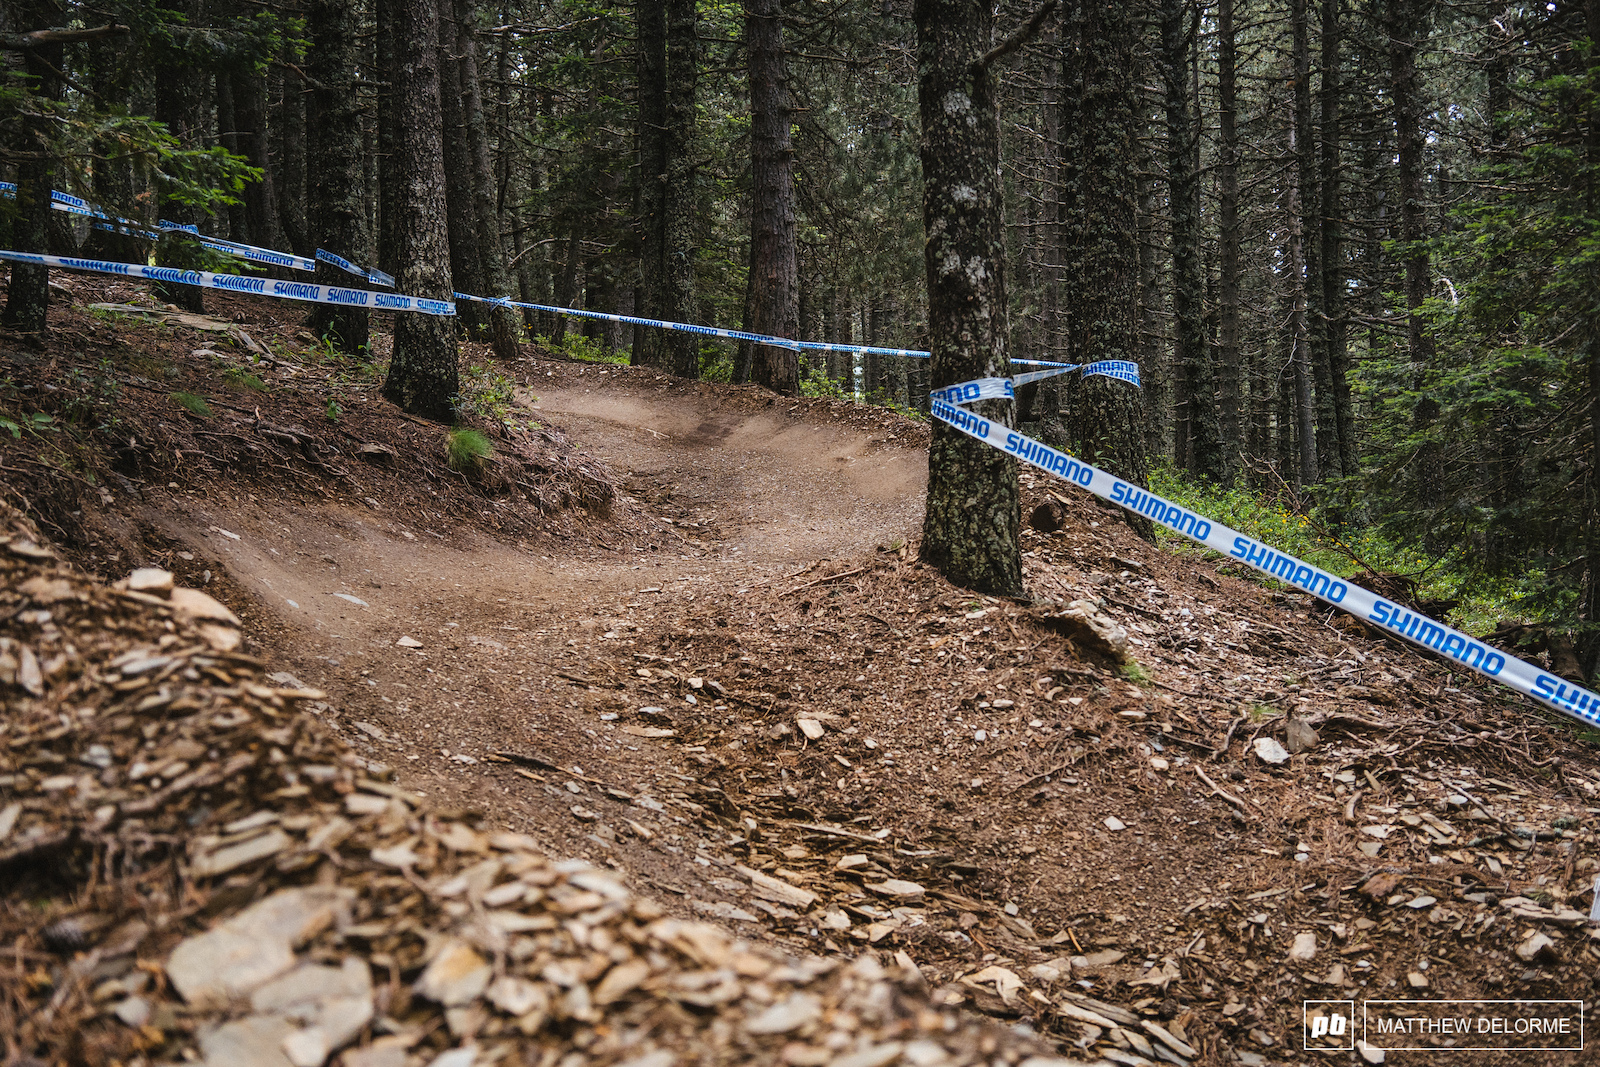 Flow trail. This may be the most well rounded XC course to date.